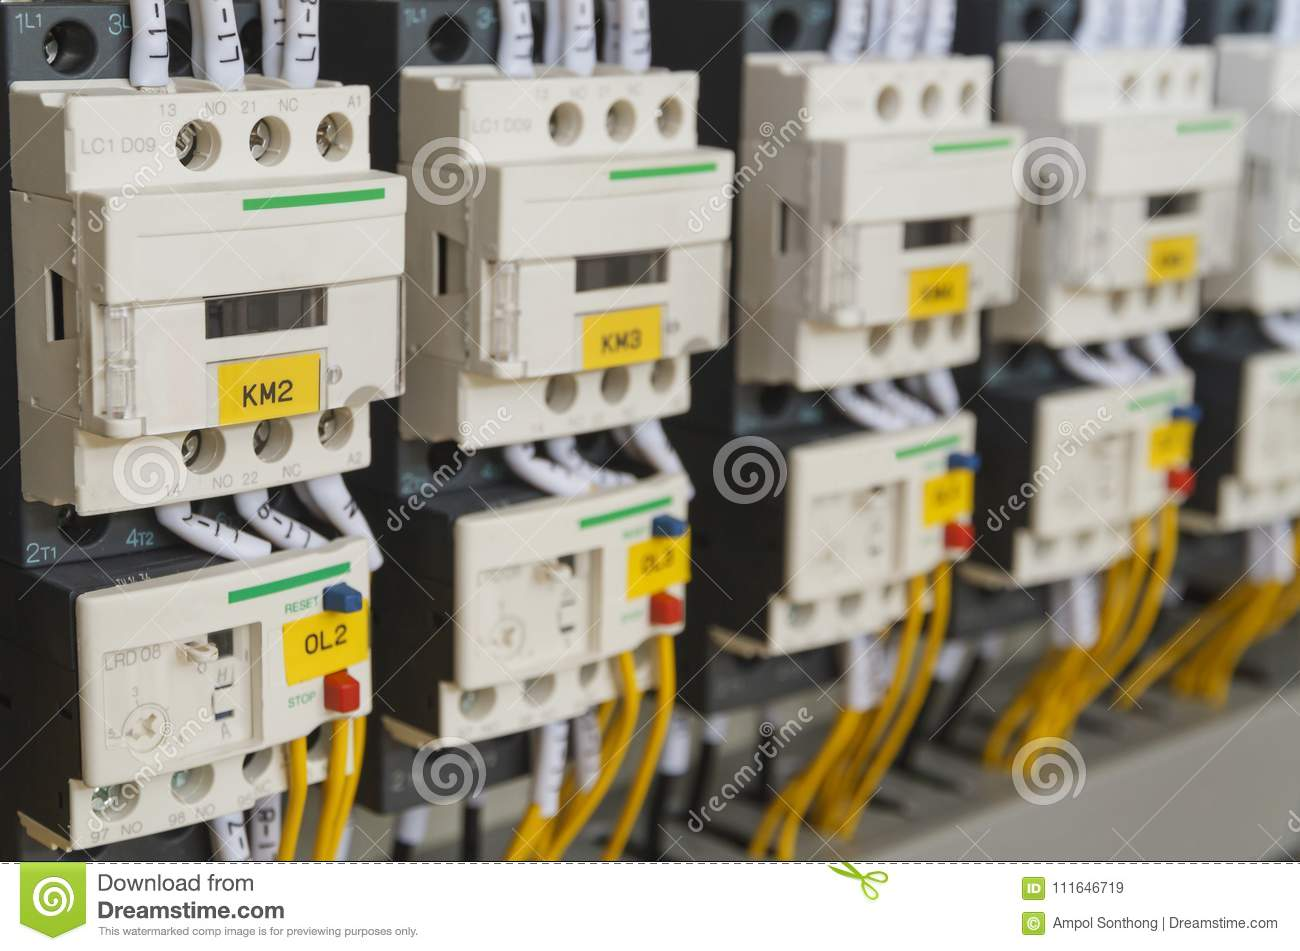 hight resolution of close up electrical wiring with fuses and contactors in control panel box of automatic machine